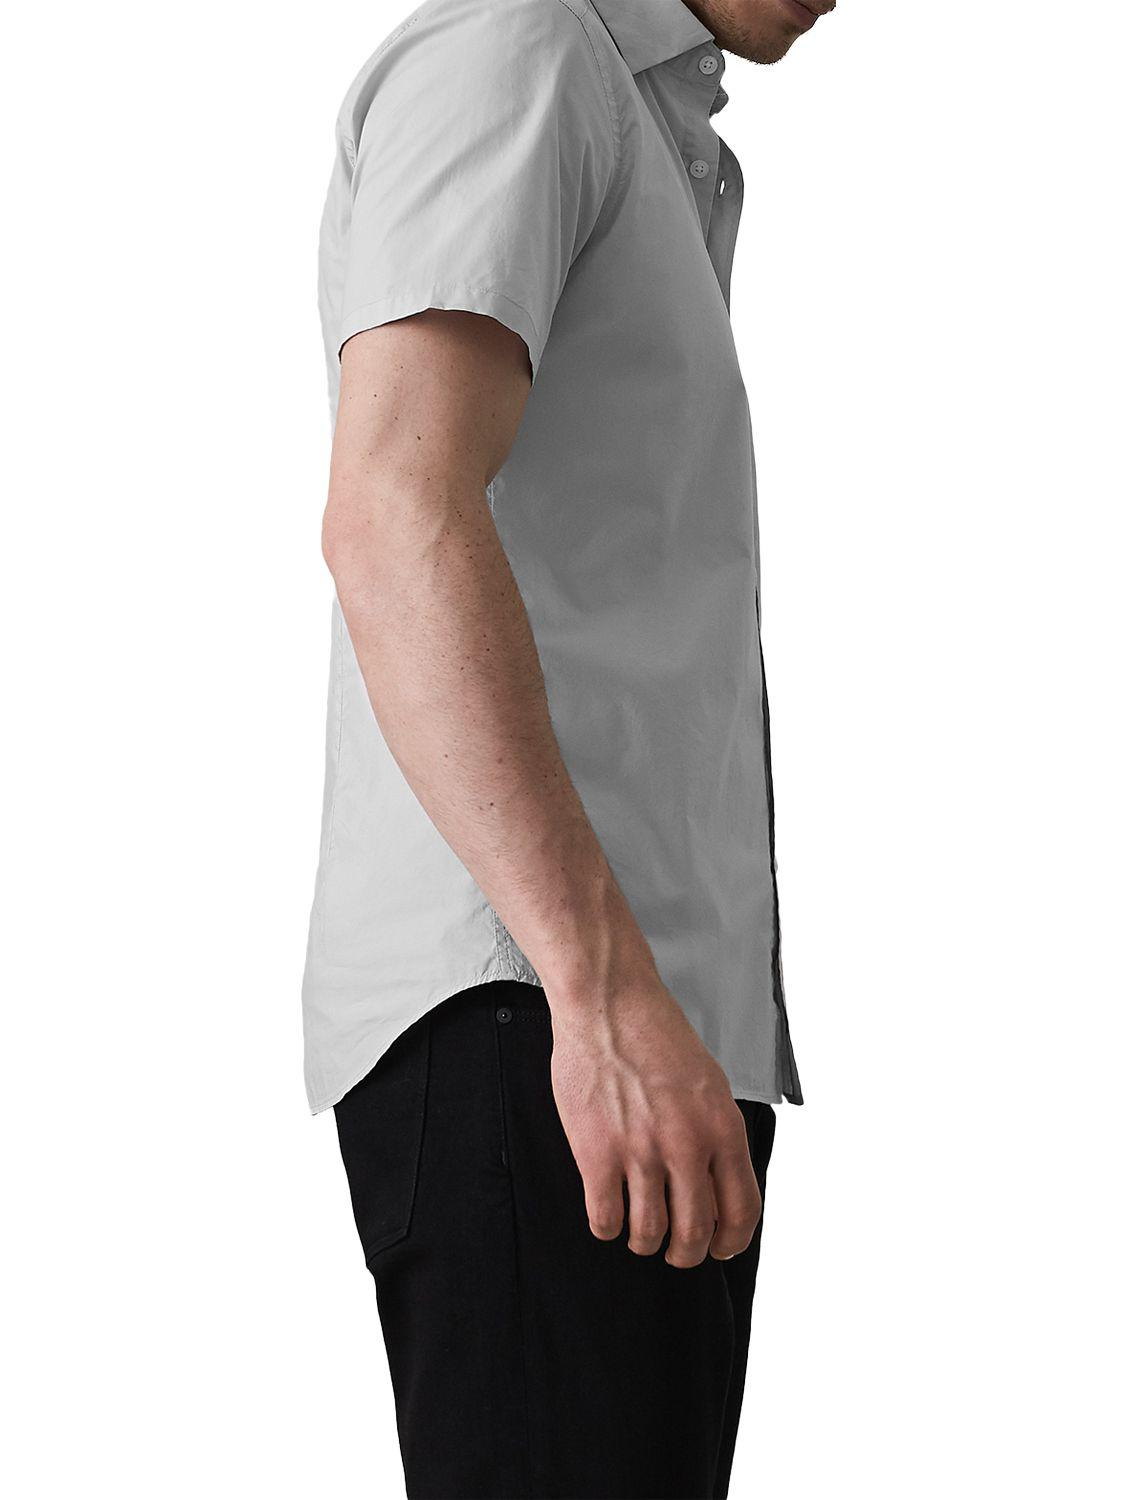 Reiss Cotton Goff - Slim Fit Short Sleeved Shirt in Soft Grey (Grey) for Men